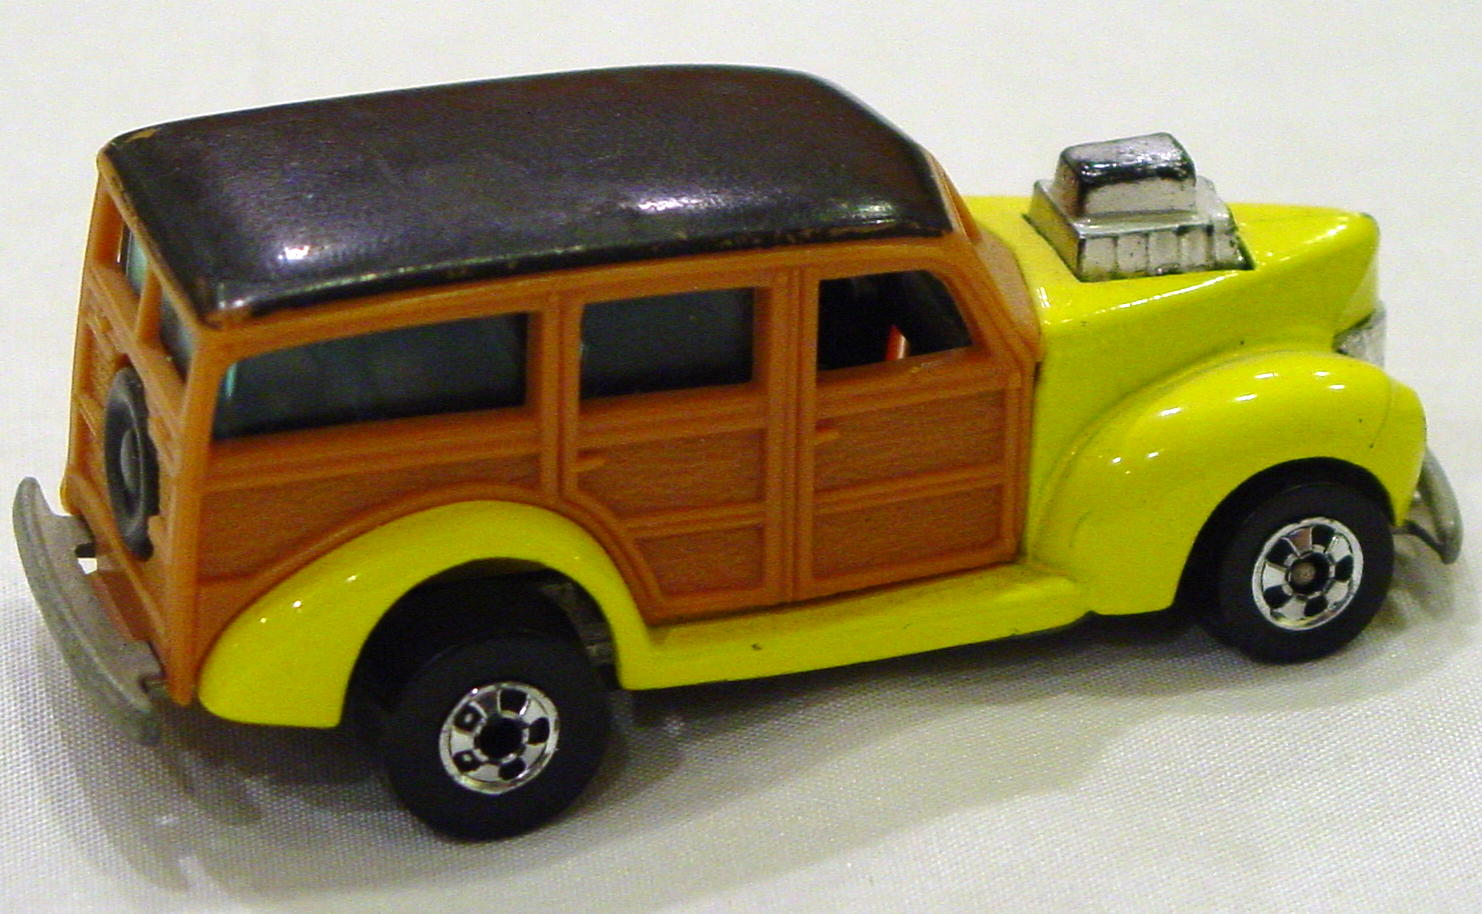 Blackwalls 1131 D 2 - 40s Woodie Yellow HiRaker